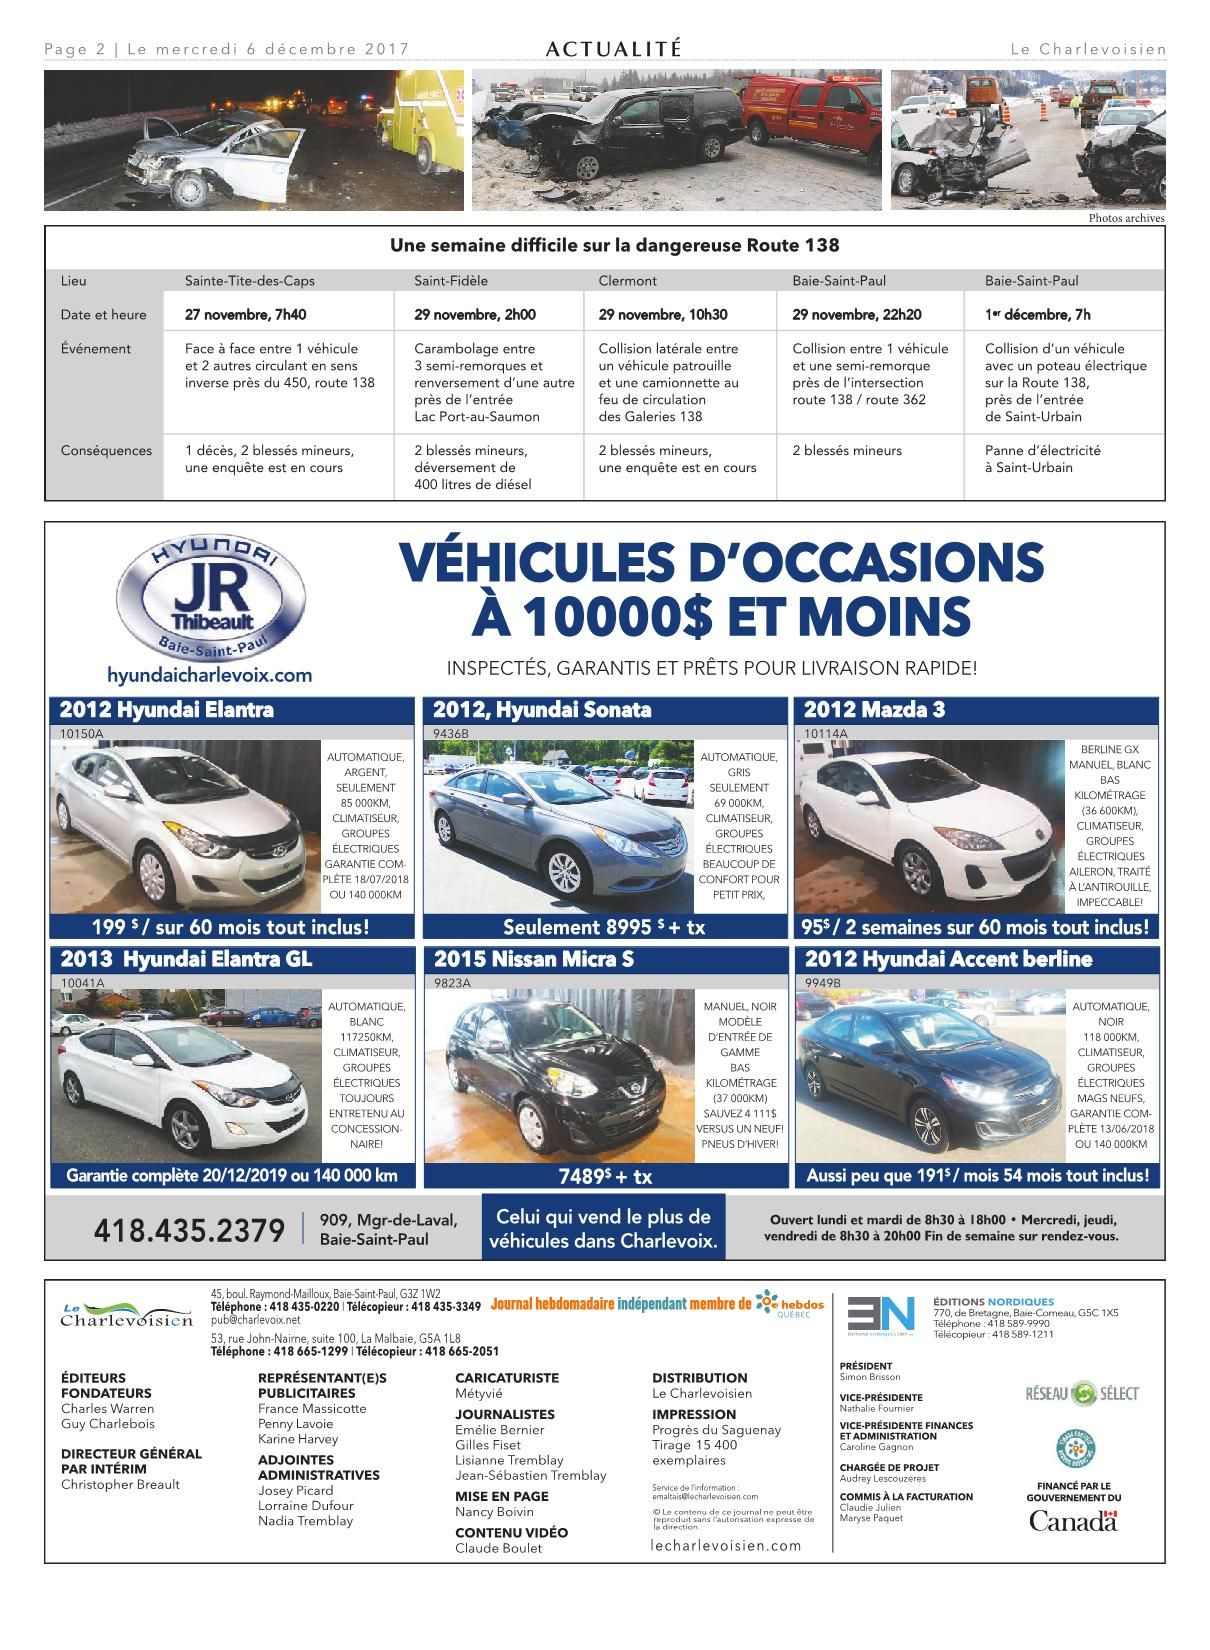 Meubles Accent Dolbeau-mistassini Le Charlevoisien 6 Décembre 2017 Pages 1 32 Text Version